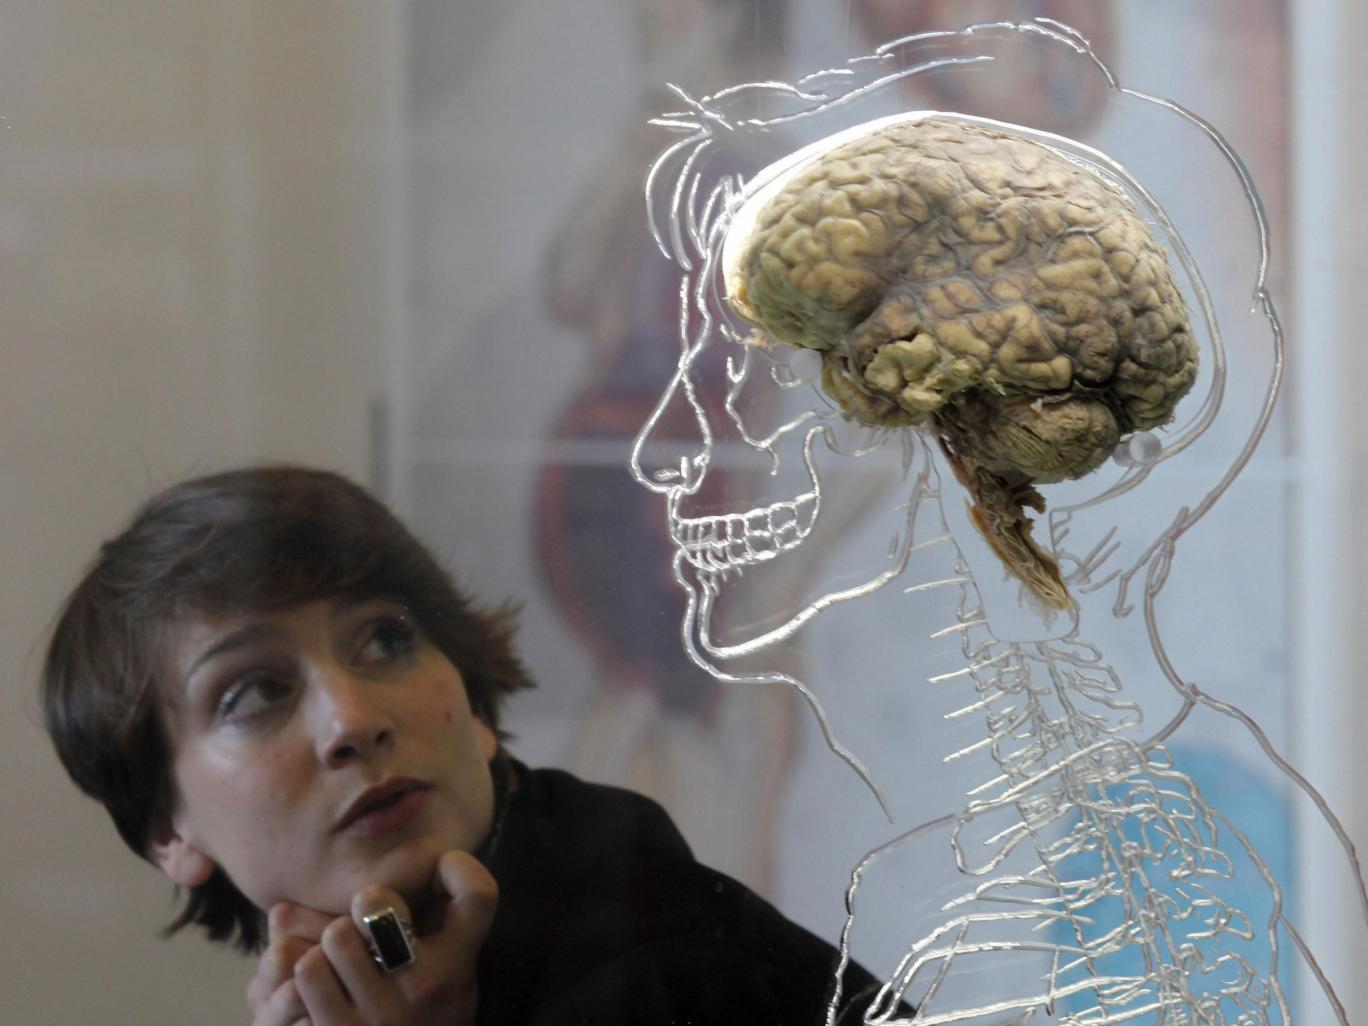 A woman looks at a human brain at an exhibition in Bristol Matt Cardy/Getty Images